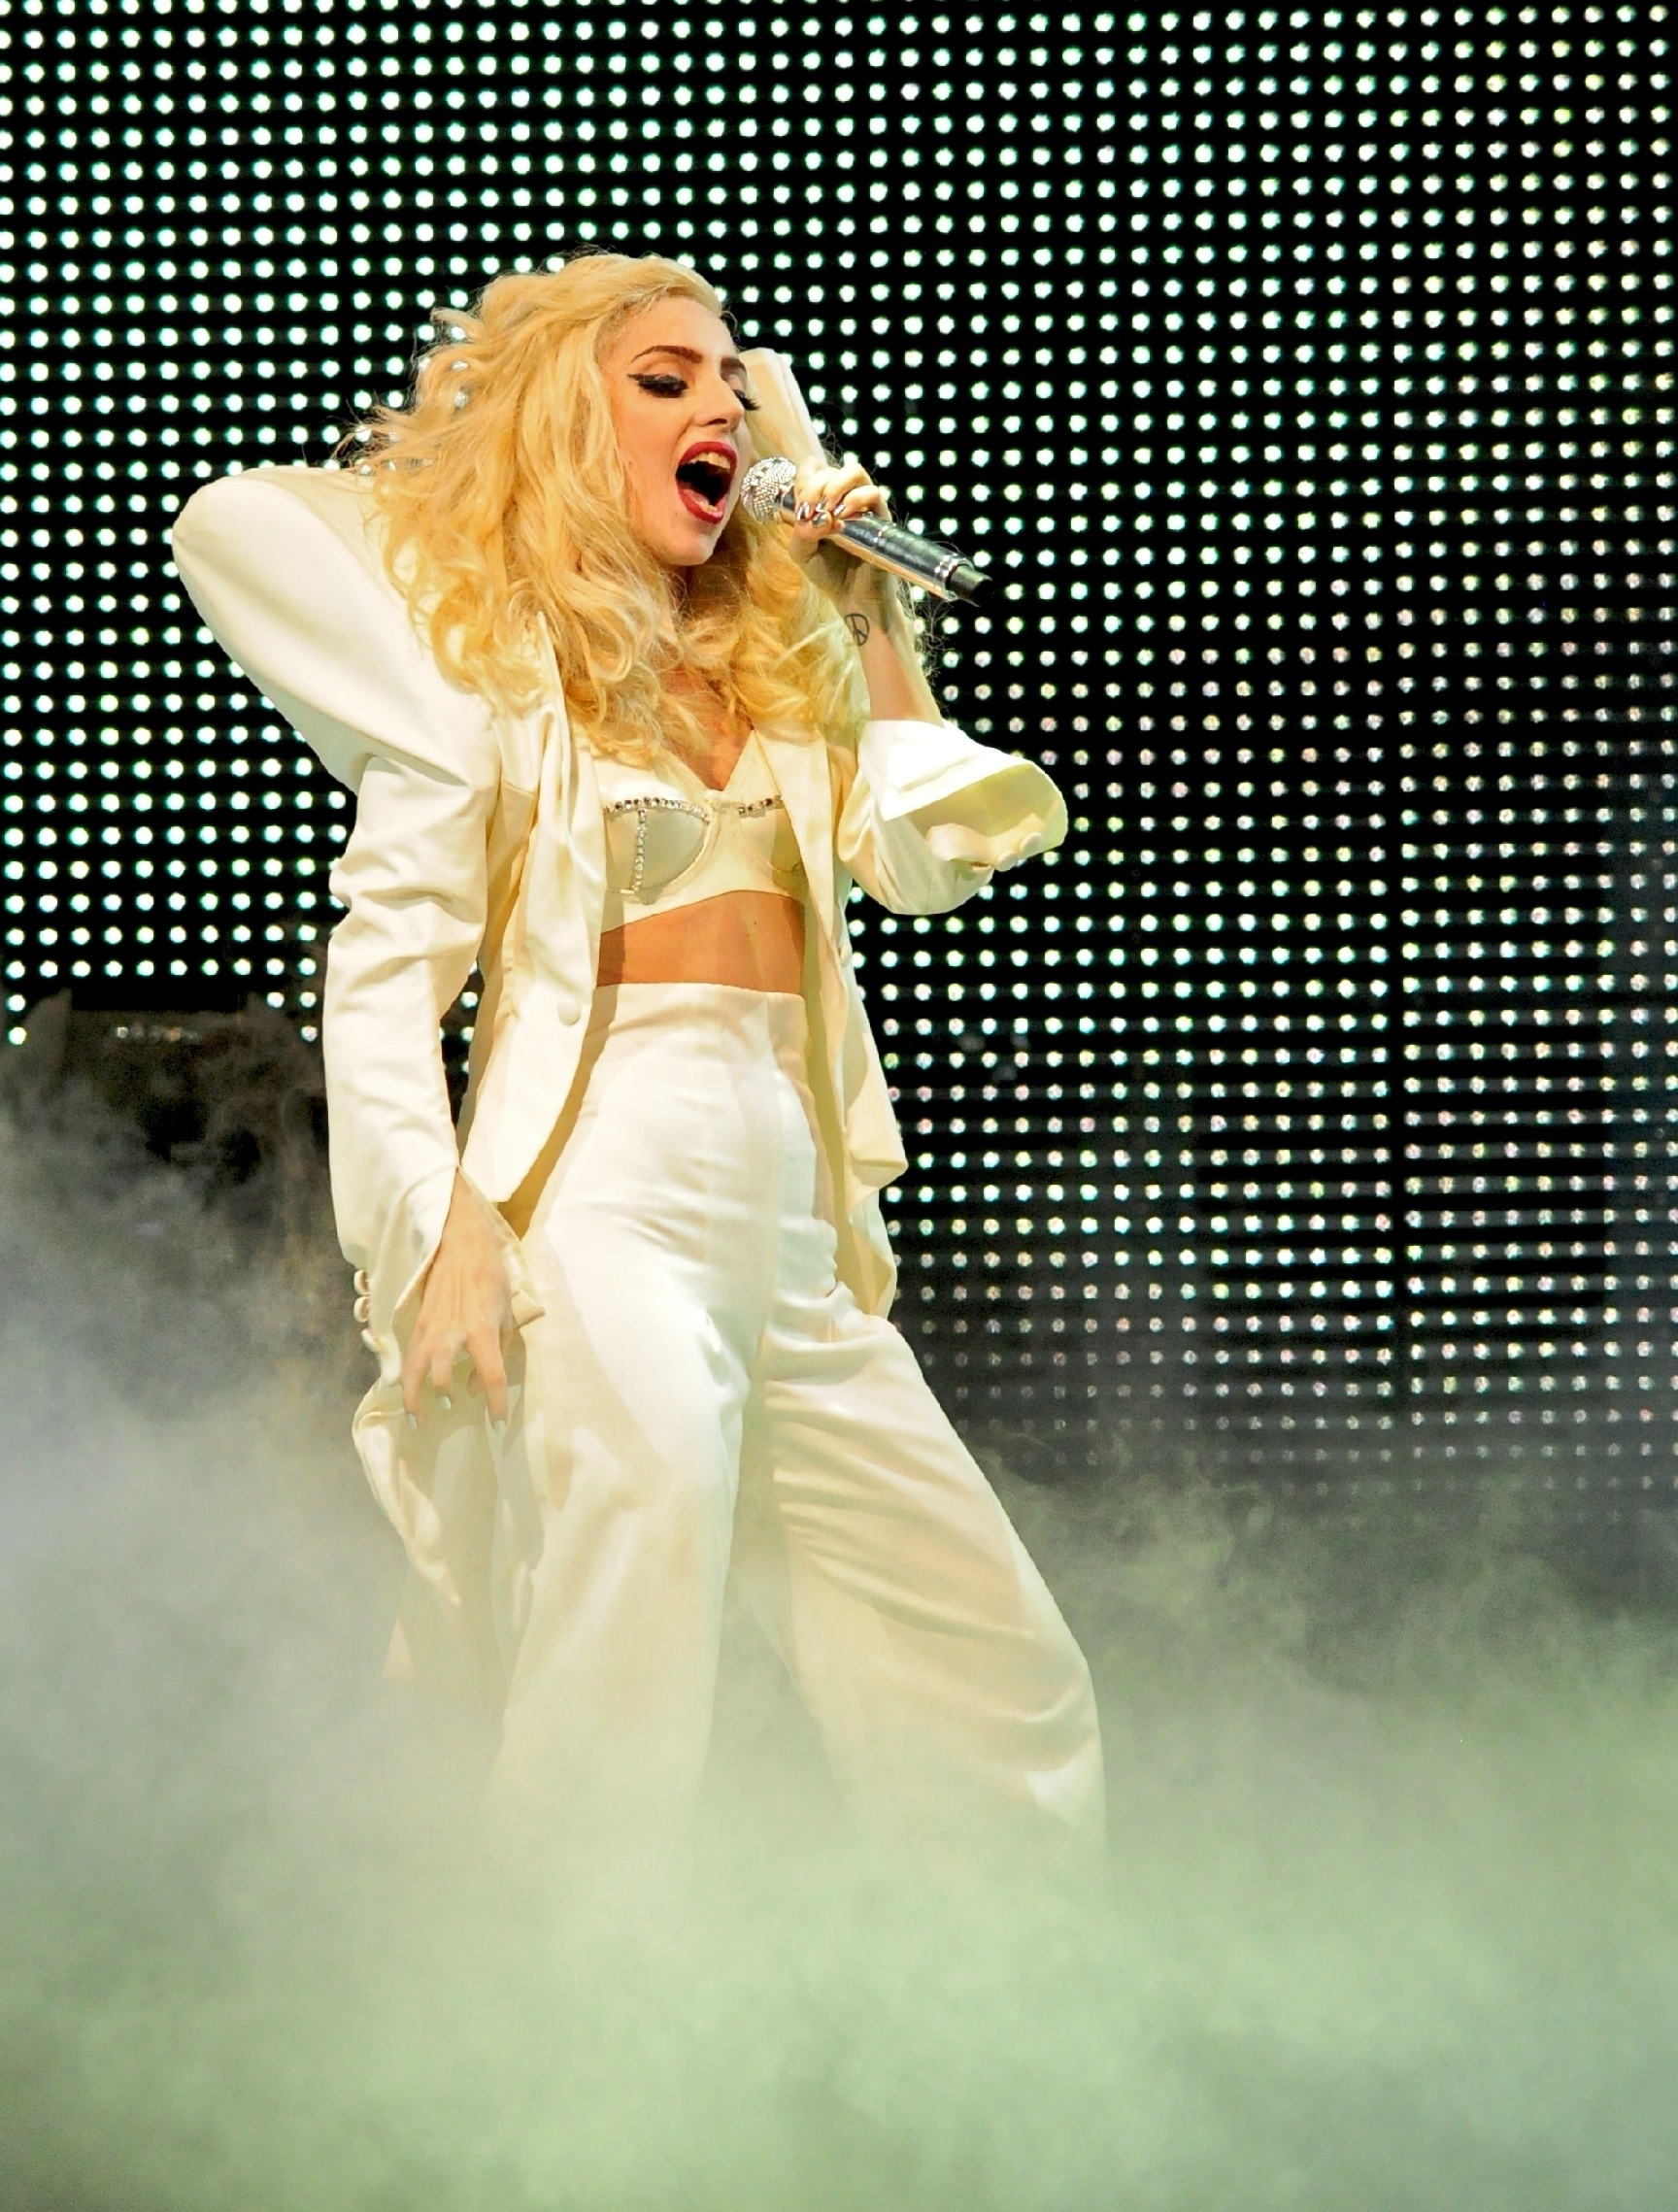 Plans in the works for a Lady Gaga 3-D concert ... Lady Gaga Tour